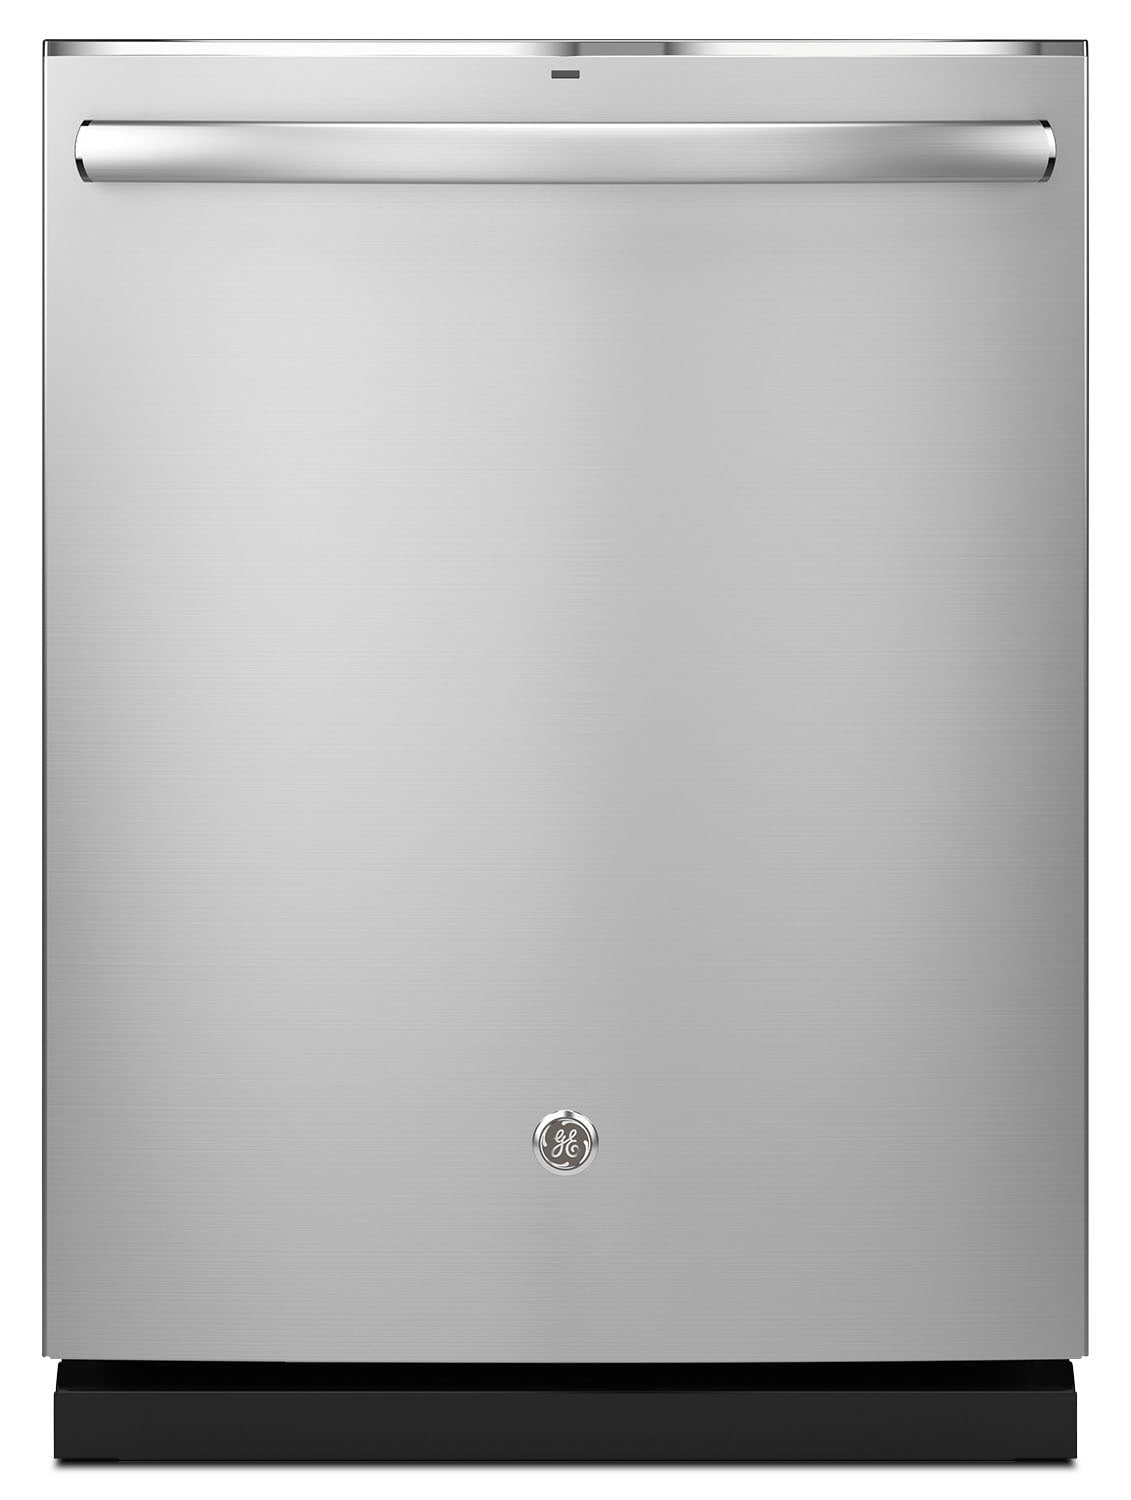 Clean-Up - GE Tall-Tub Built-In Dishwasher – GDT655SSJSS